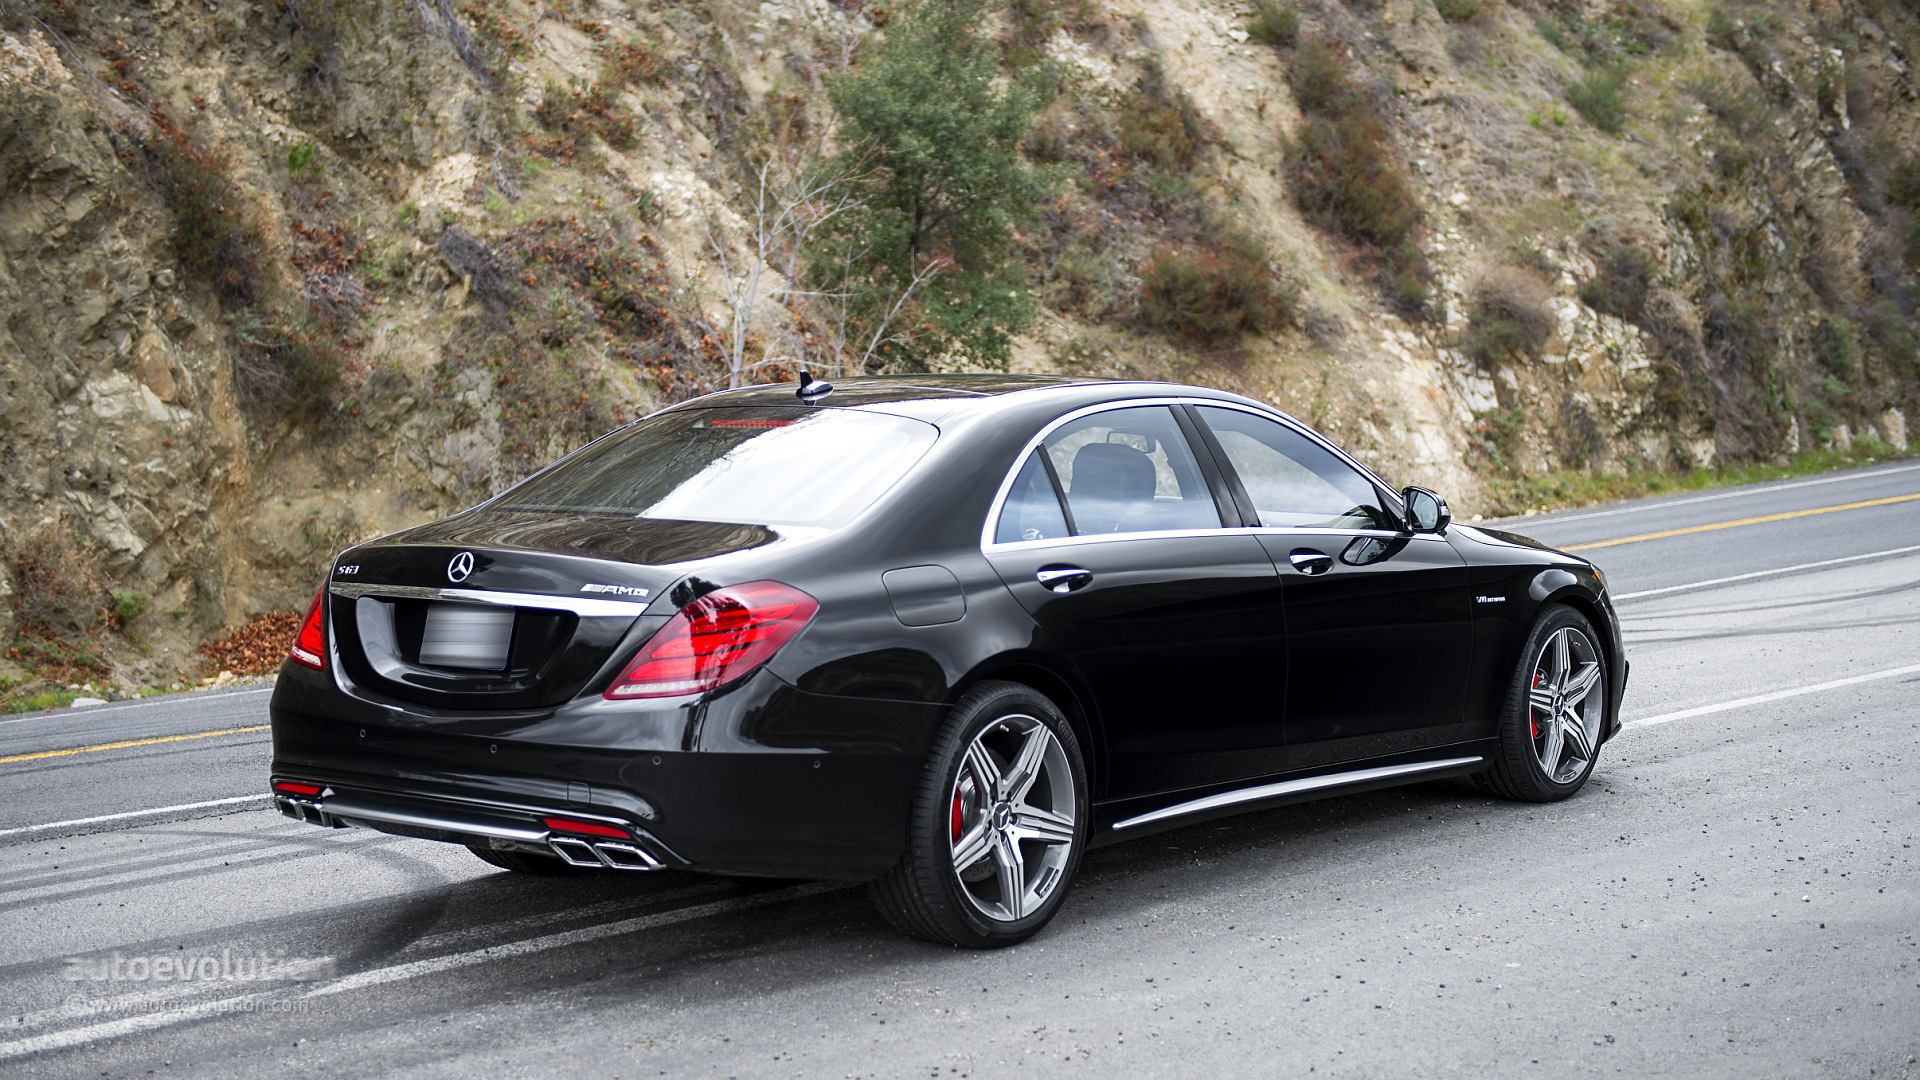 Mercedes benz s63 amg 4matic review page 2 autoevolution for Mercedes benz reliability ratings